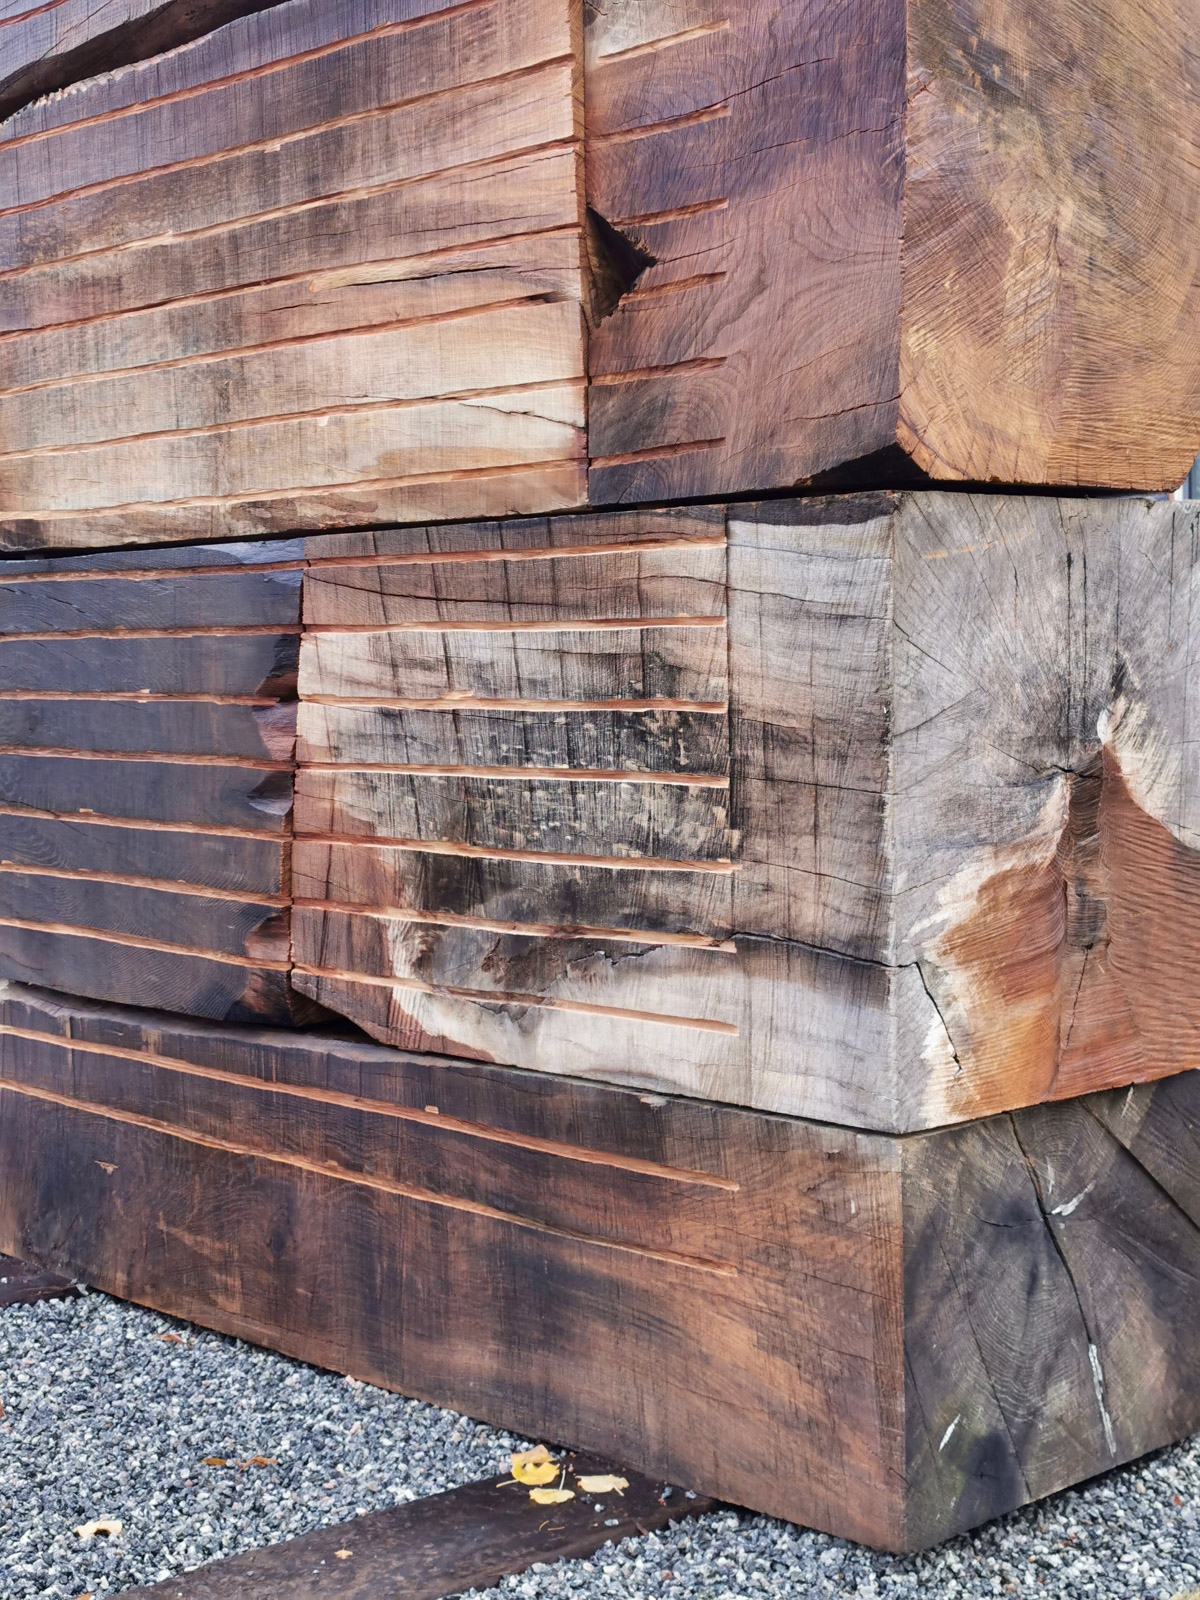 Domstol / Court, 2020. Untreated oak blocks carved with chainsaw and wood cutter, railway sleepers. 650 x 270 x 70 cm. Detail. Commissioned work, KORO (Public Art Norway), 2020.